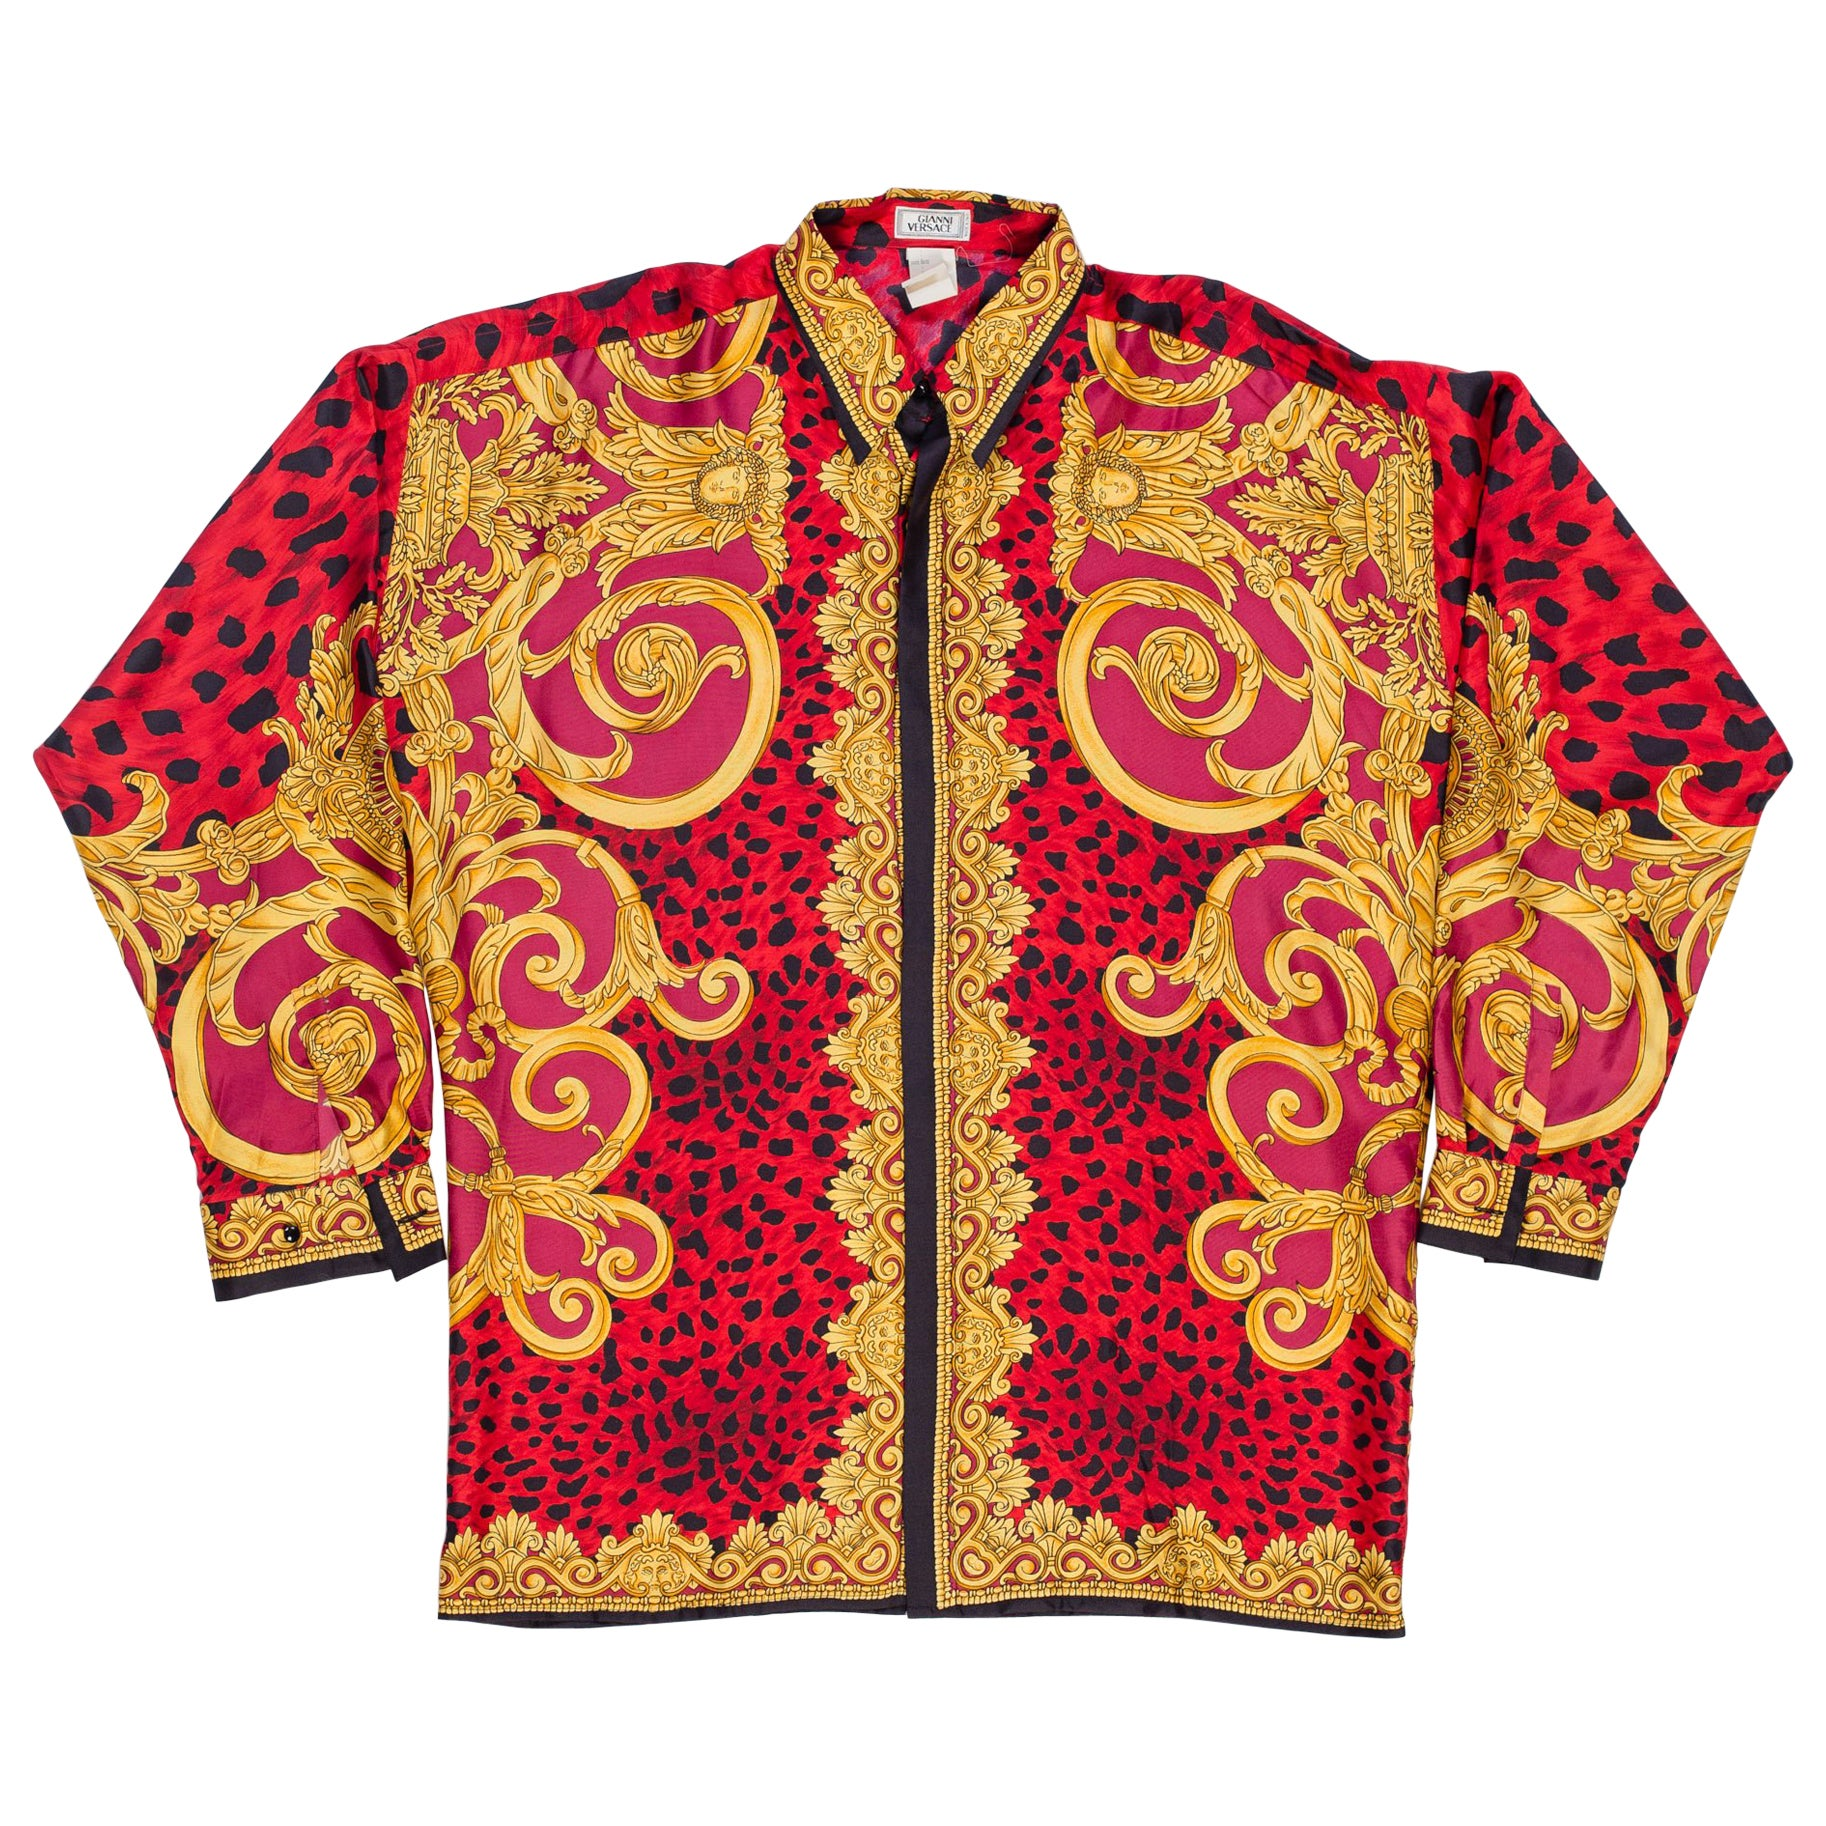 6ec94b45 Gianni Versace early 1990s Mens Red Baroque Leopard Print Silk Shirt at  1stdibs